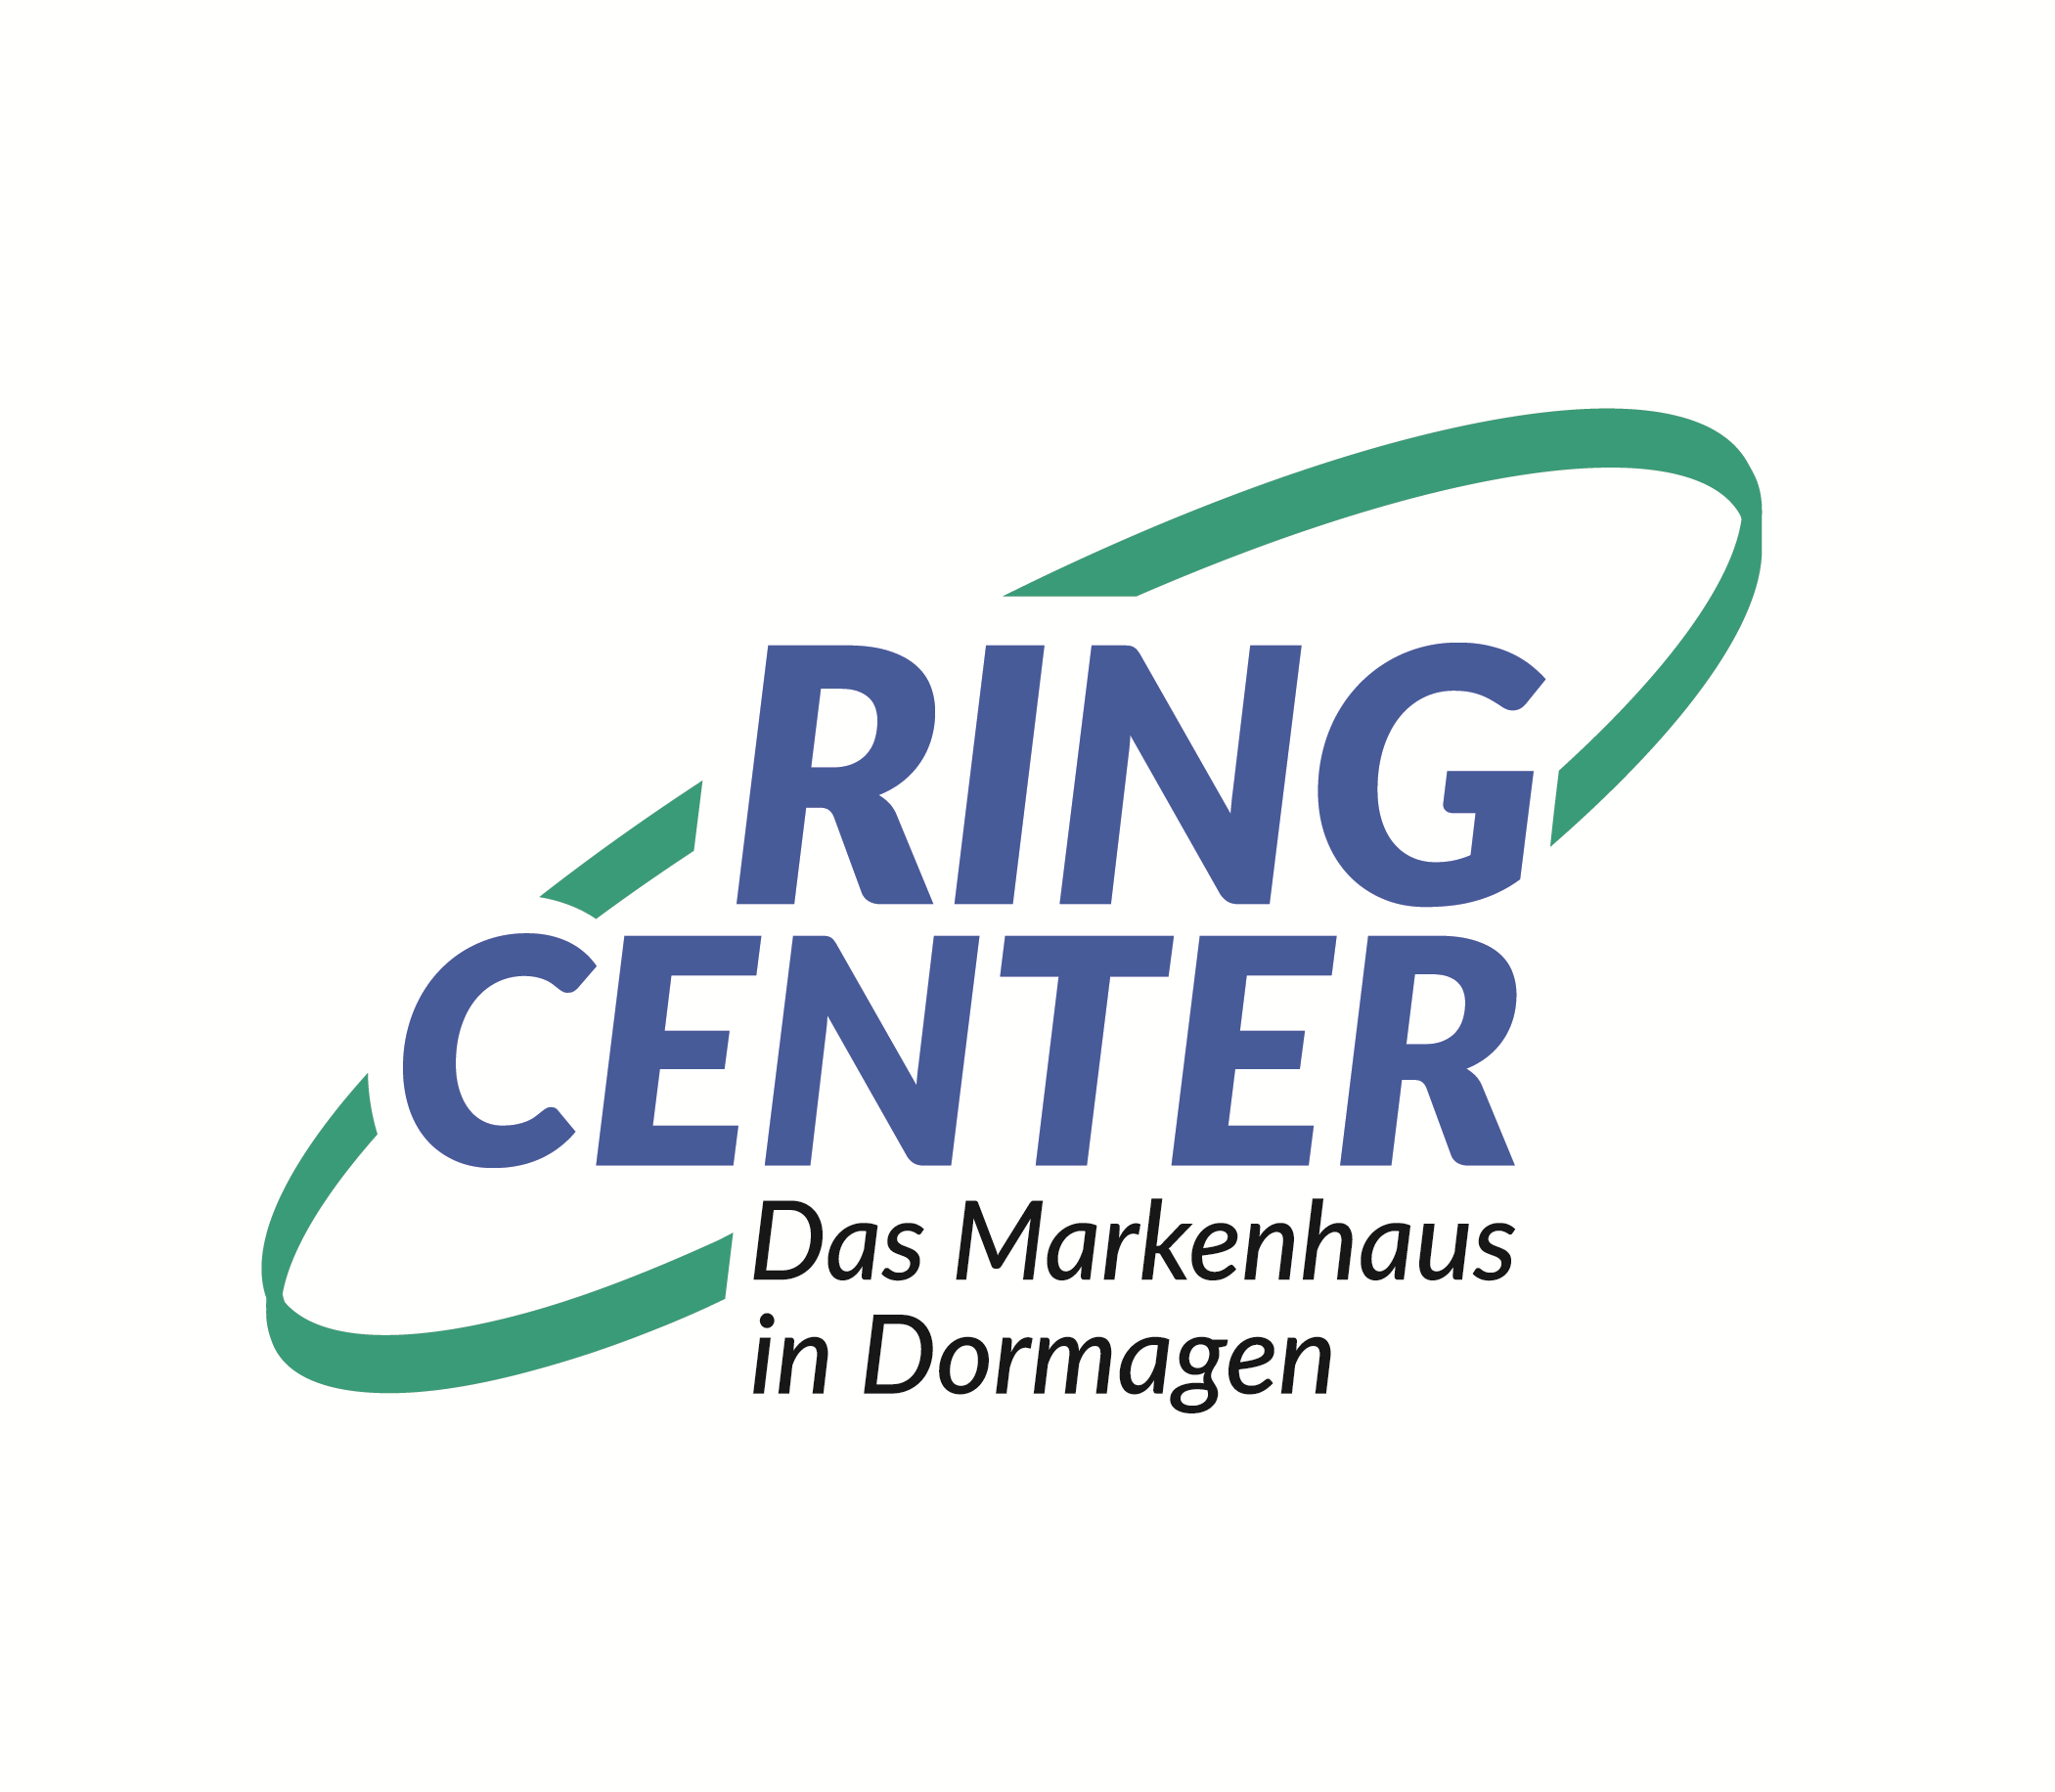 RING CENTER - Das Markenhaus in Dormagen